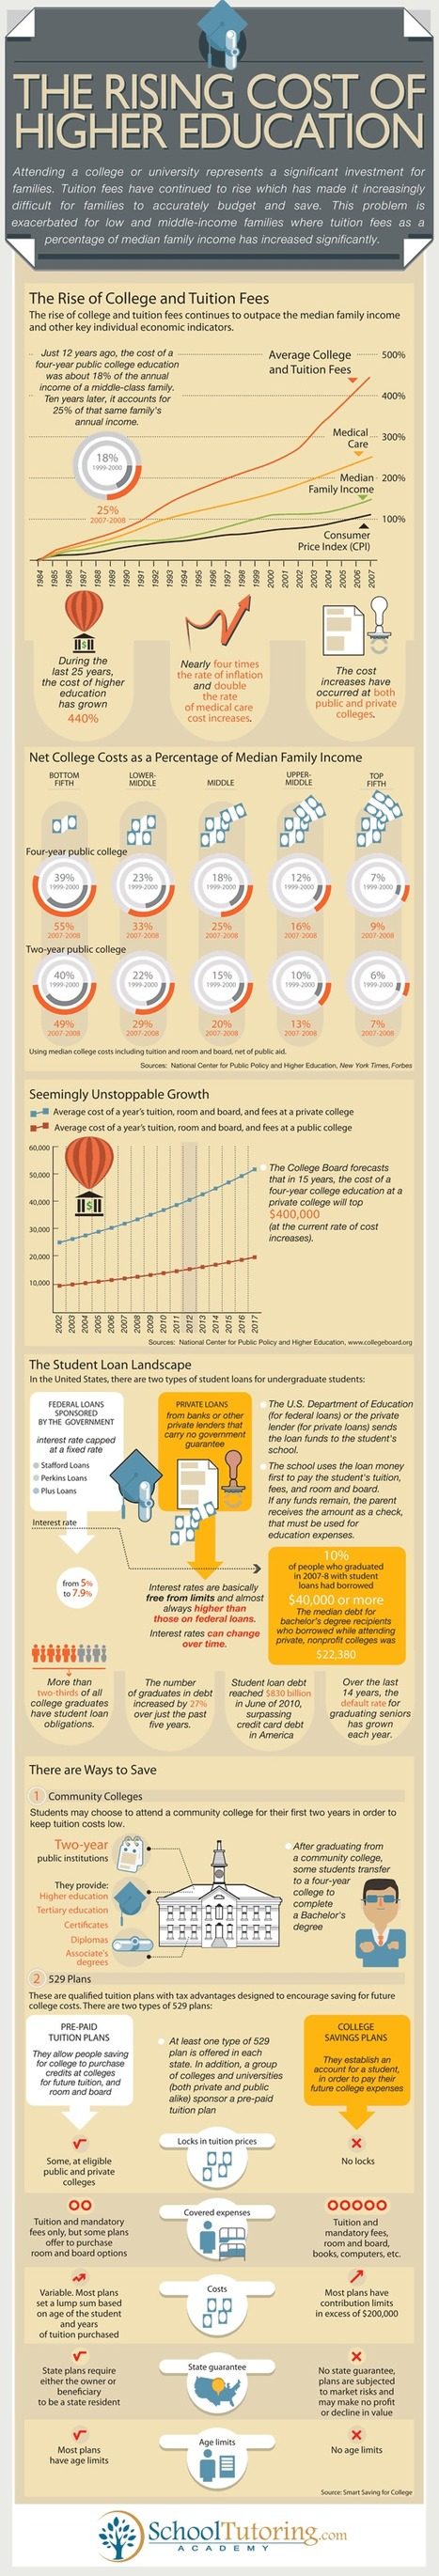 Case Study: How Education Cost has Grown up Quickly in Recent Times | Studying Teaching and Learning | Scoop.it